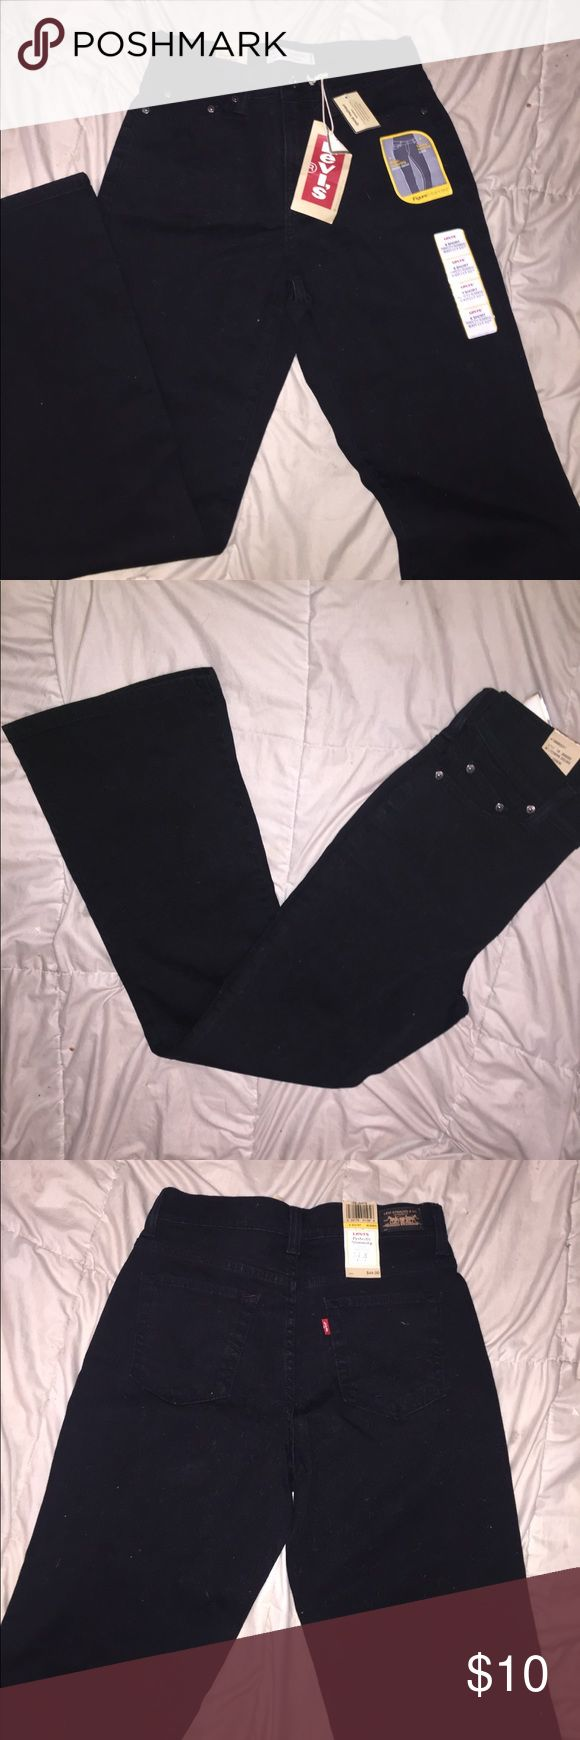 NWT Levis Bootcut Black Jeans 6 Short perfectly slimming boot cut all black levi jeans. brand new never worn. tag says $44.00, i purchased these at a yard sale for $12 and selling for $10 Levi's Jeans Boot Cut